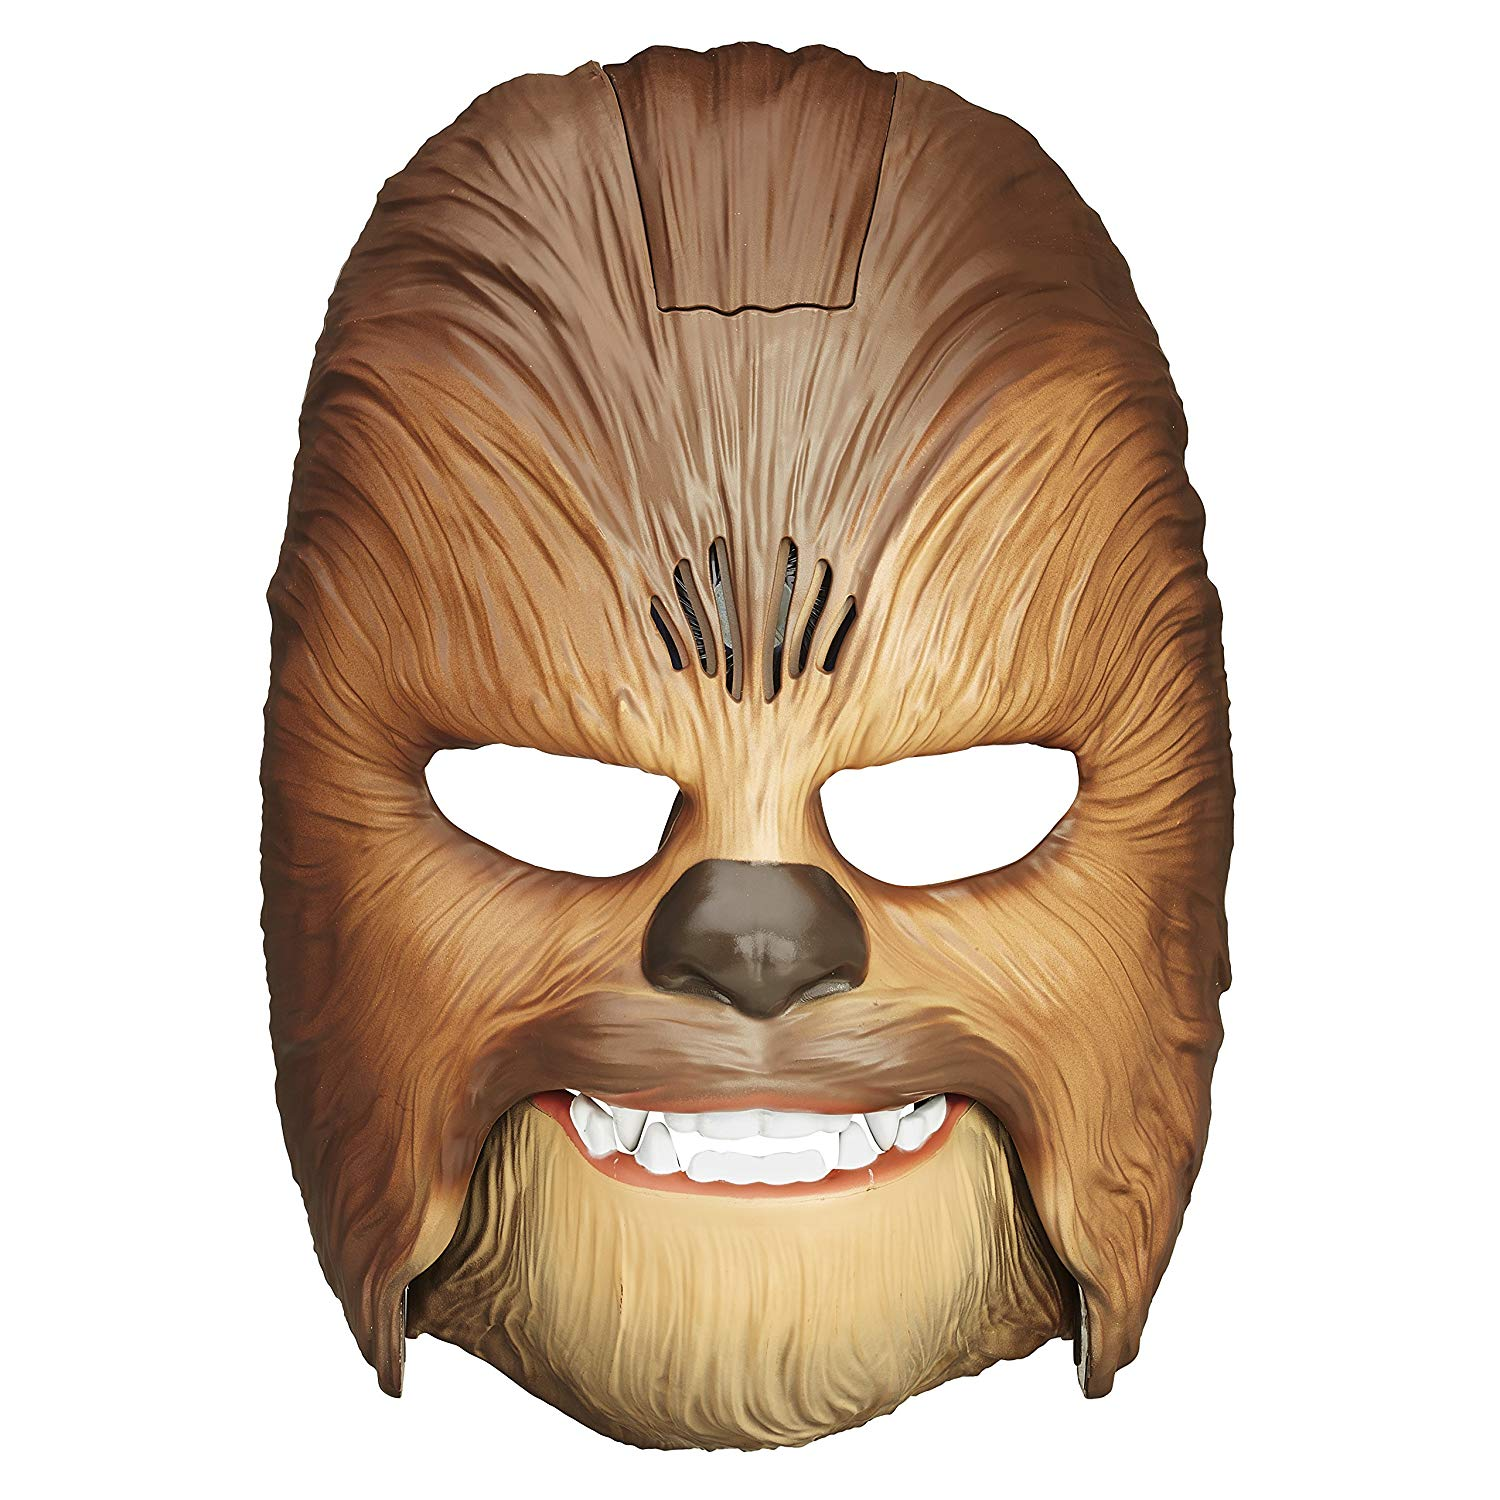 11 Gifts for The Realest Star Wars Fans